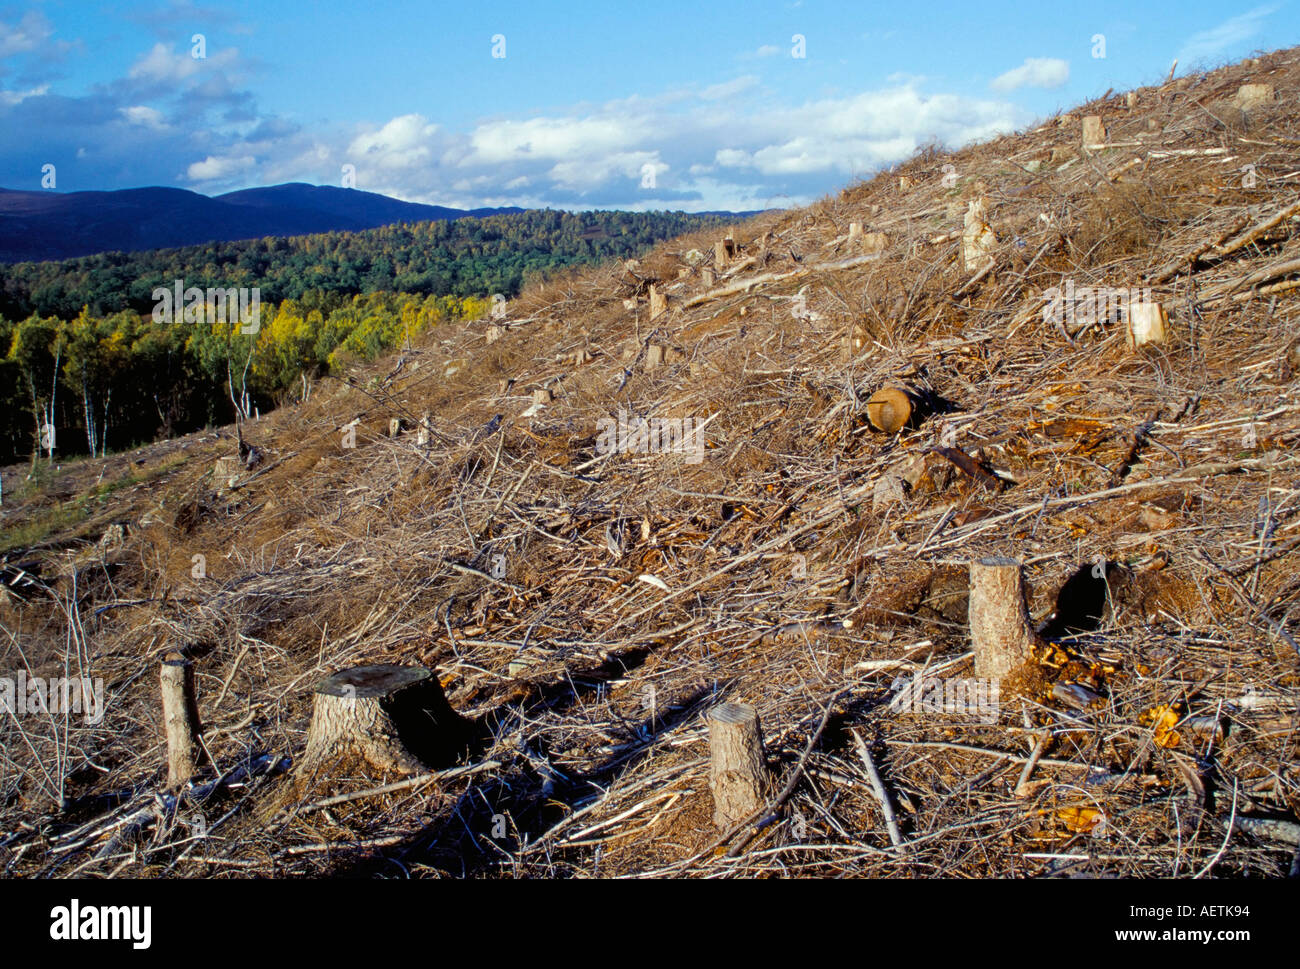 Domaine de la déforestation près d'Aviemore Highlands Ecosse Royaume-Uni Europe Photo Stock